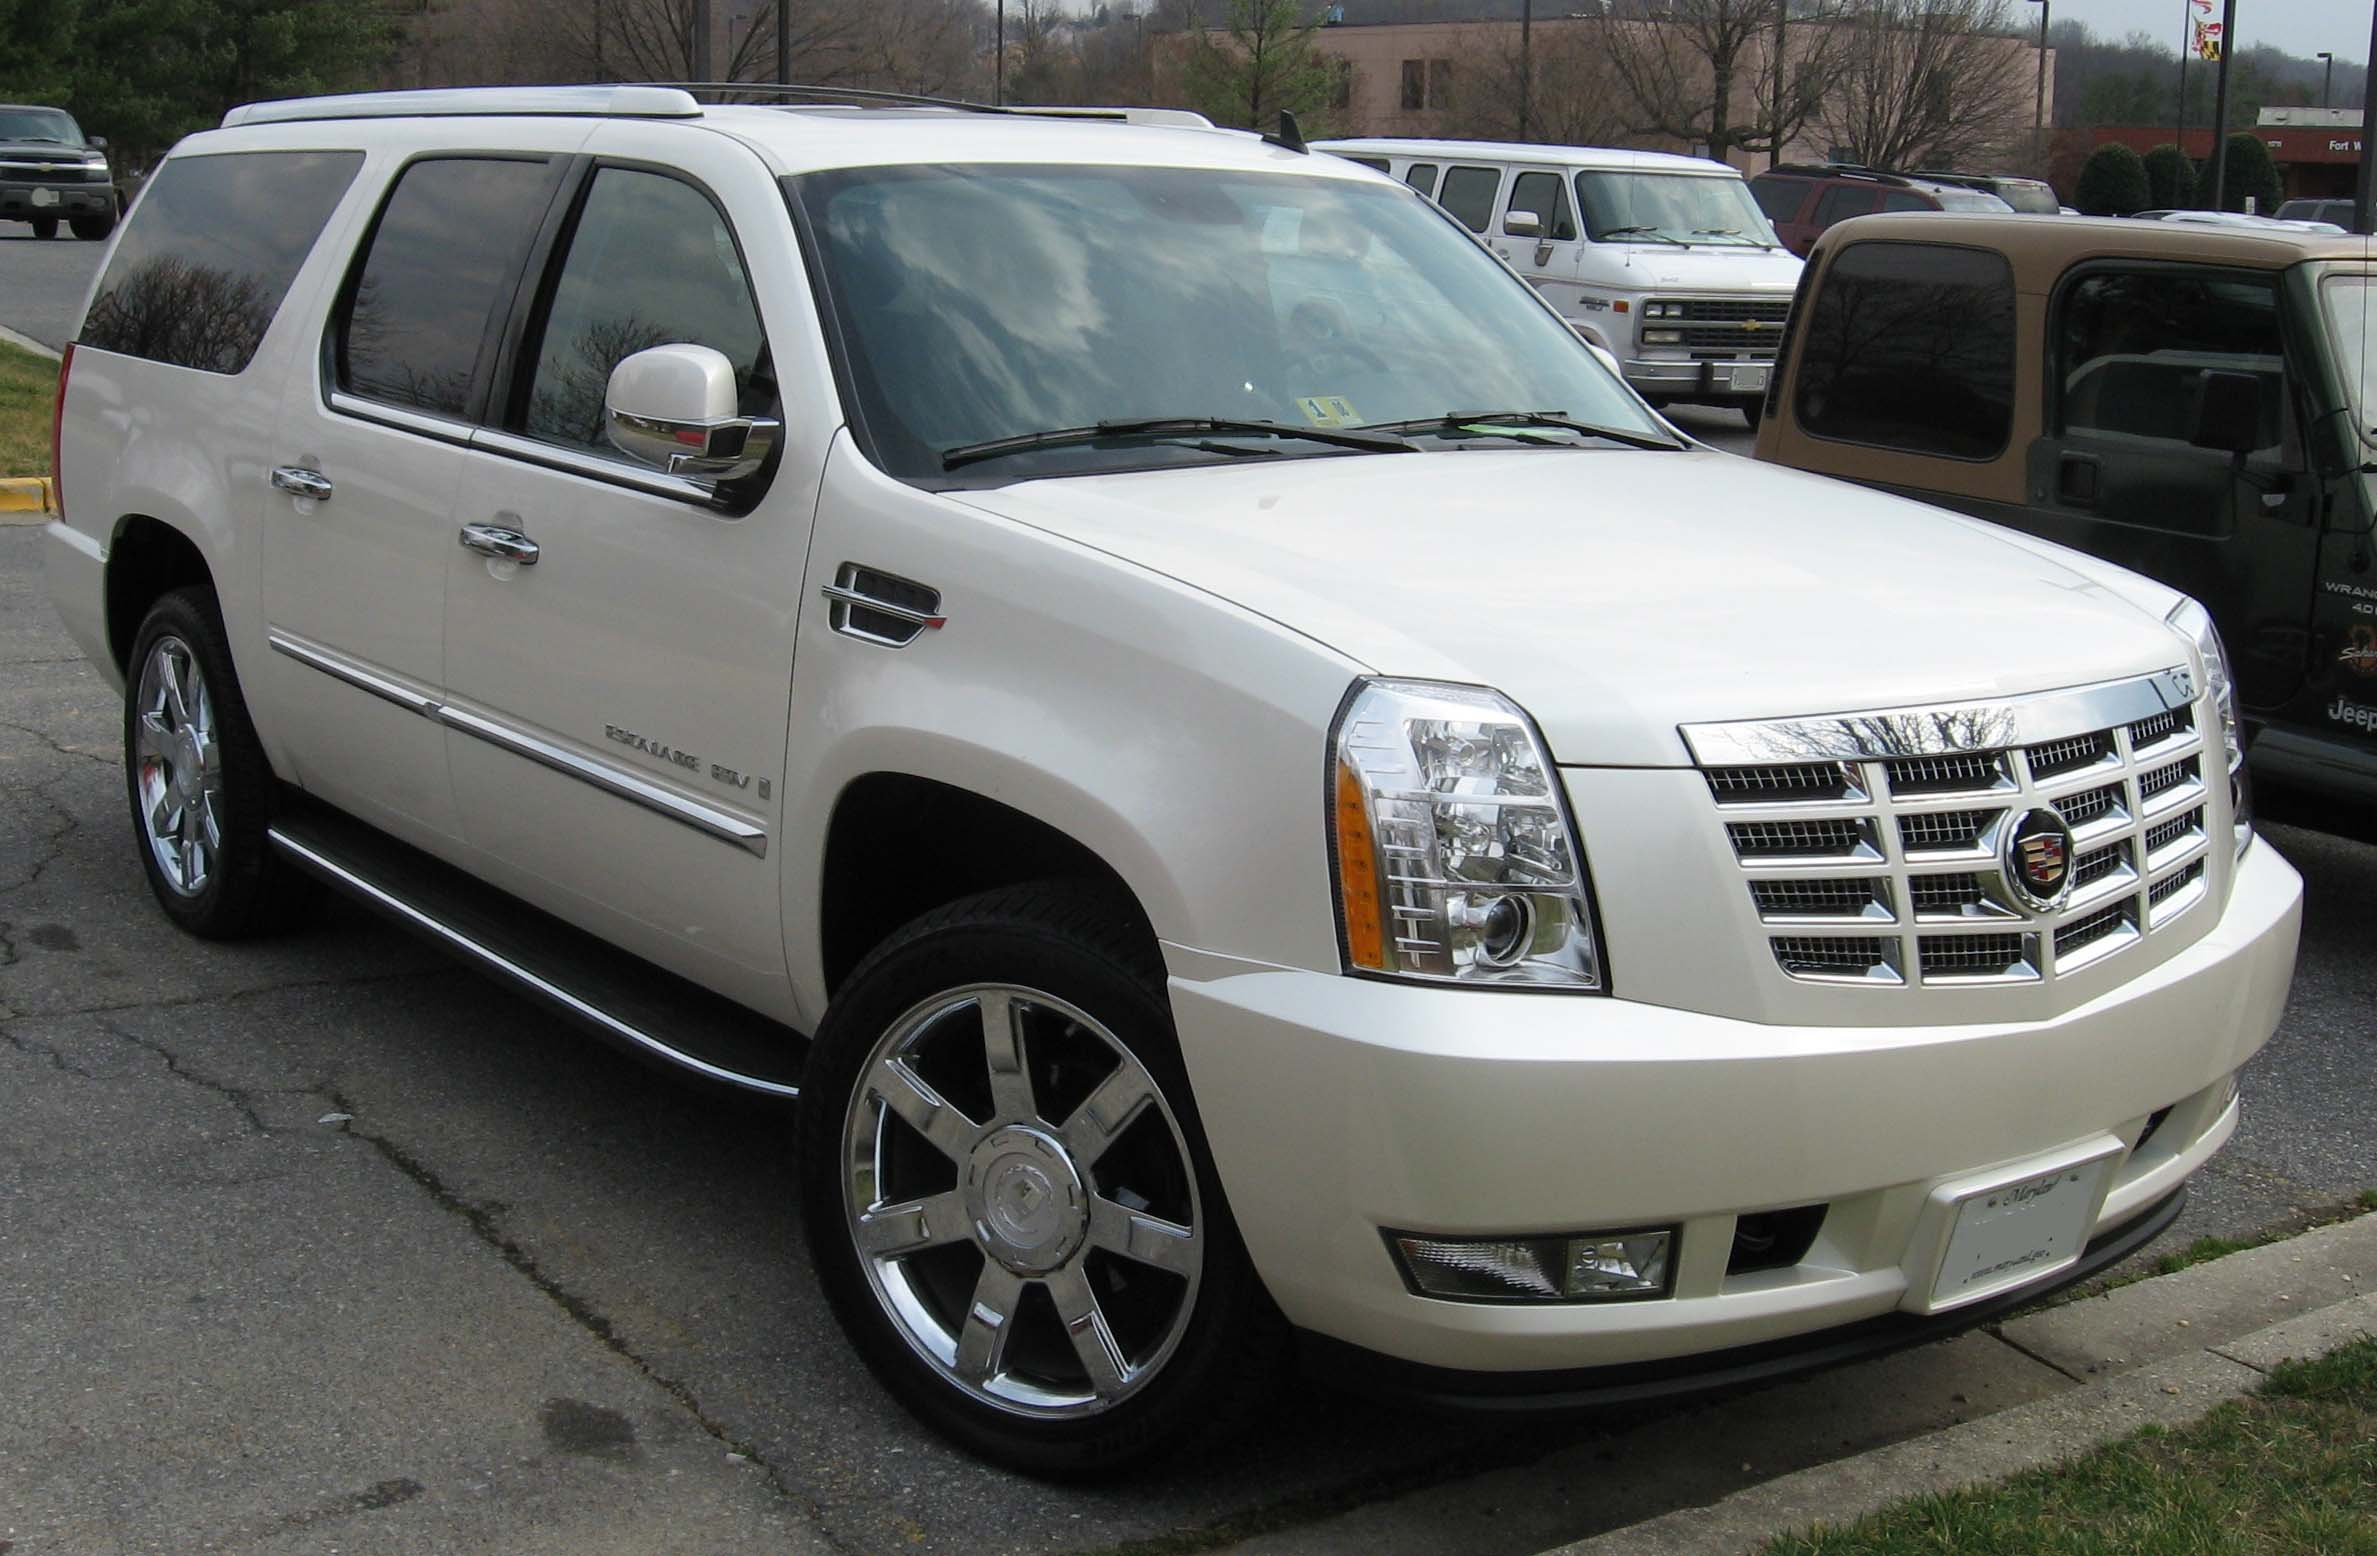 photo for vehicle cadillac aveo vehicles chevrolet sale escalade in mi vehiclesearchresults sebewaing